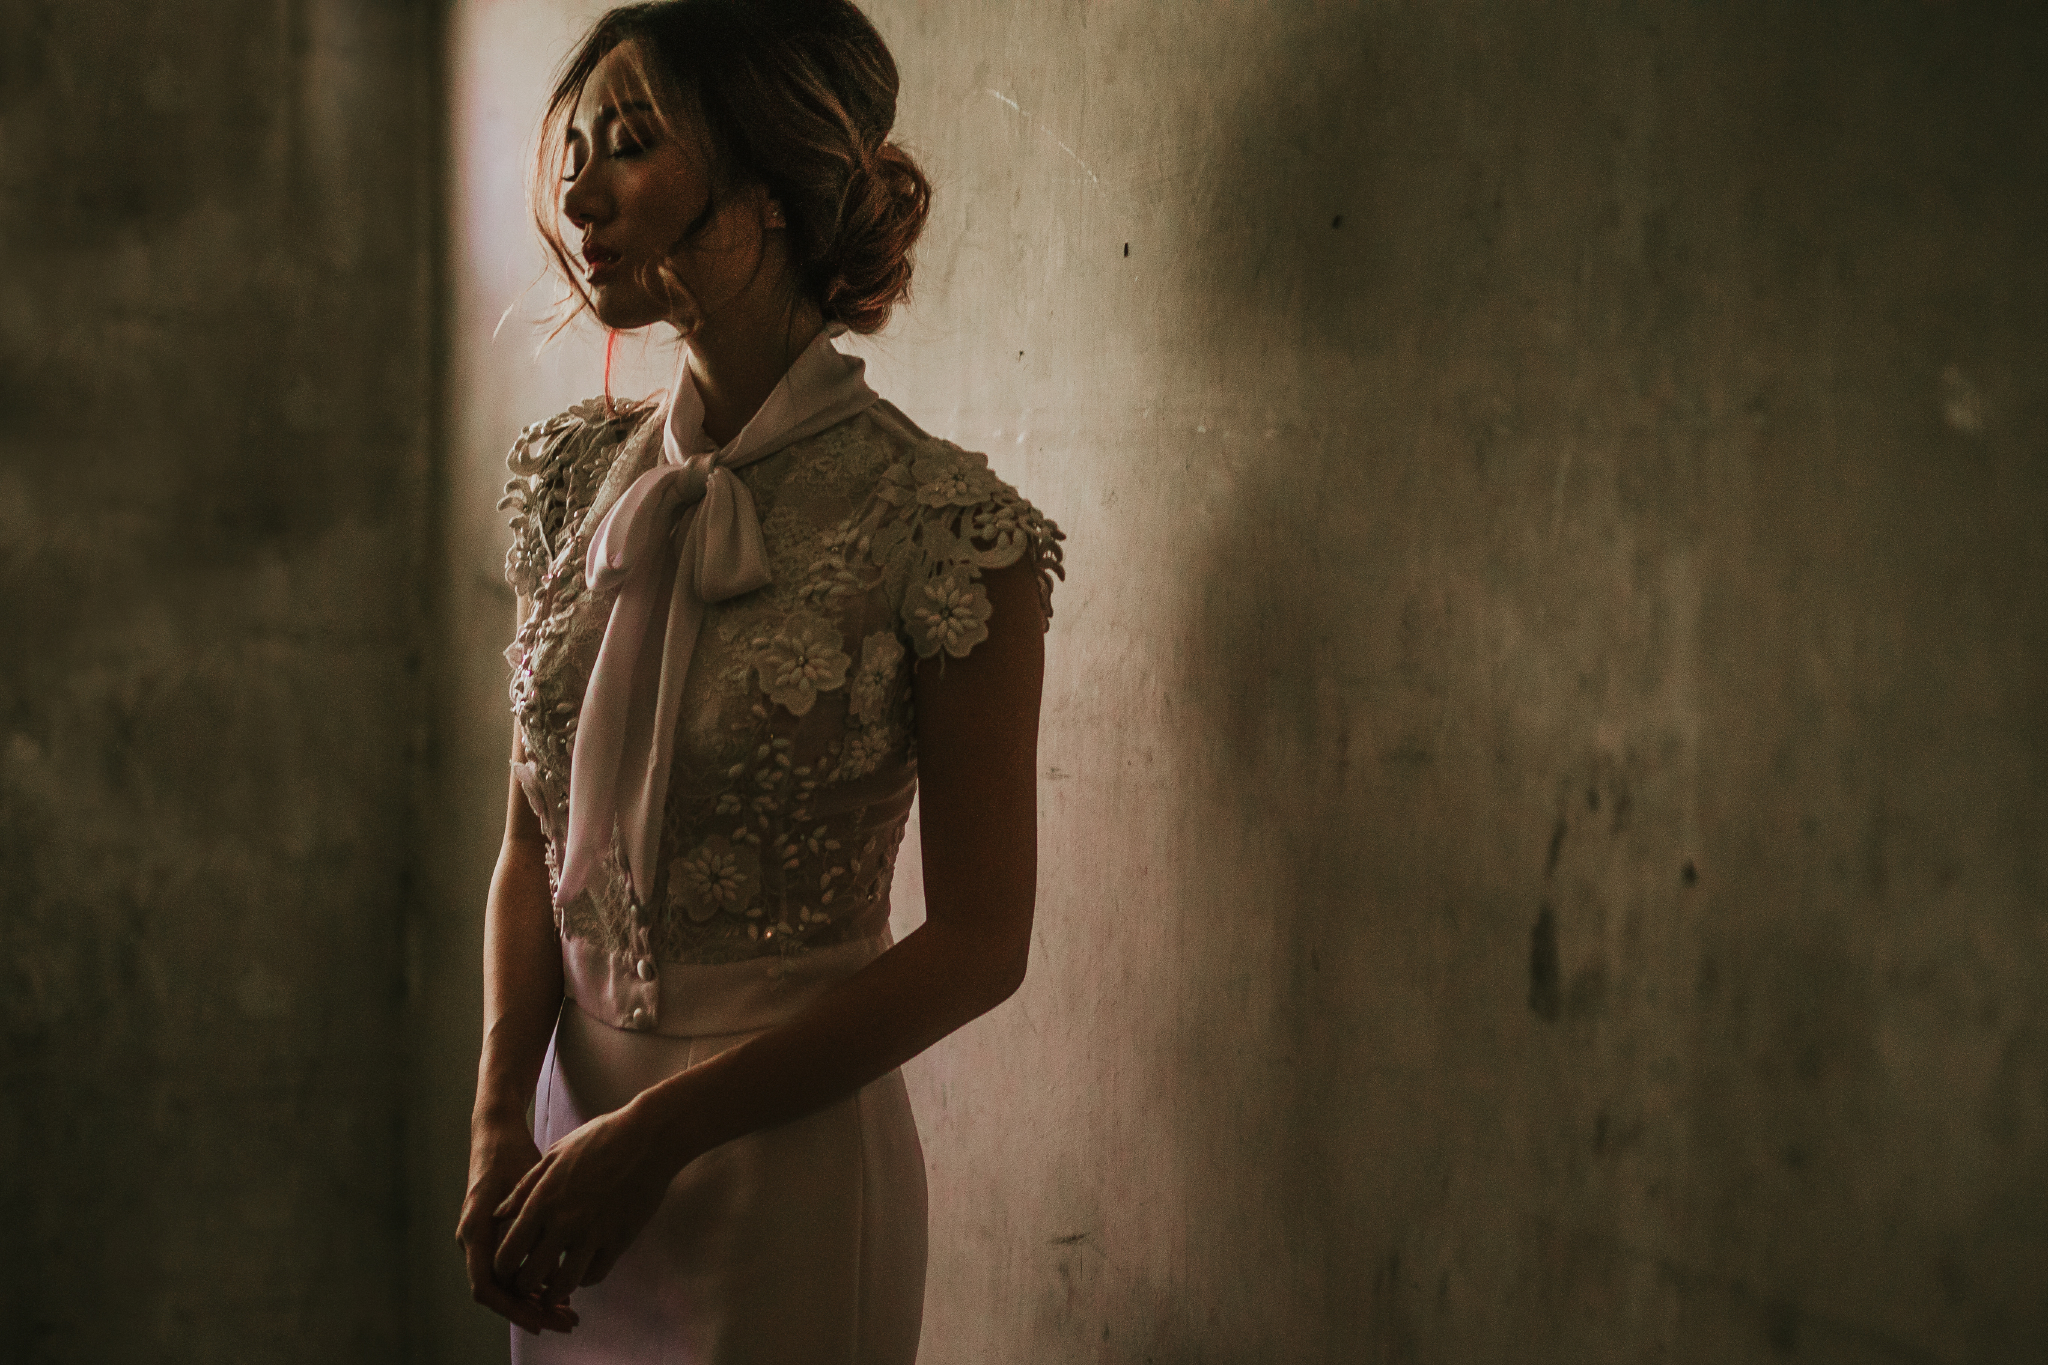 San Diego Wedding Photographer | Jessica Chiao-han Yang | Bahay Lakan | Philippine Weddings